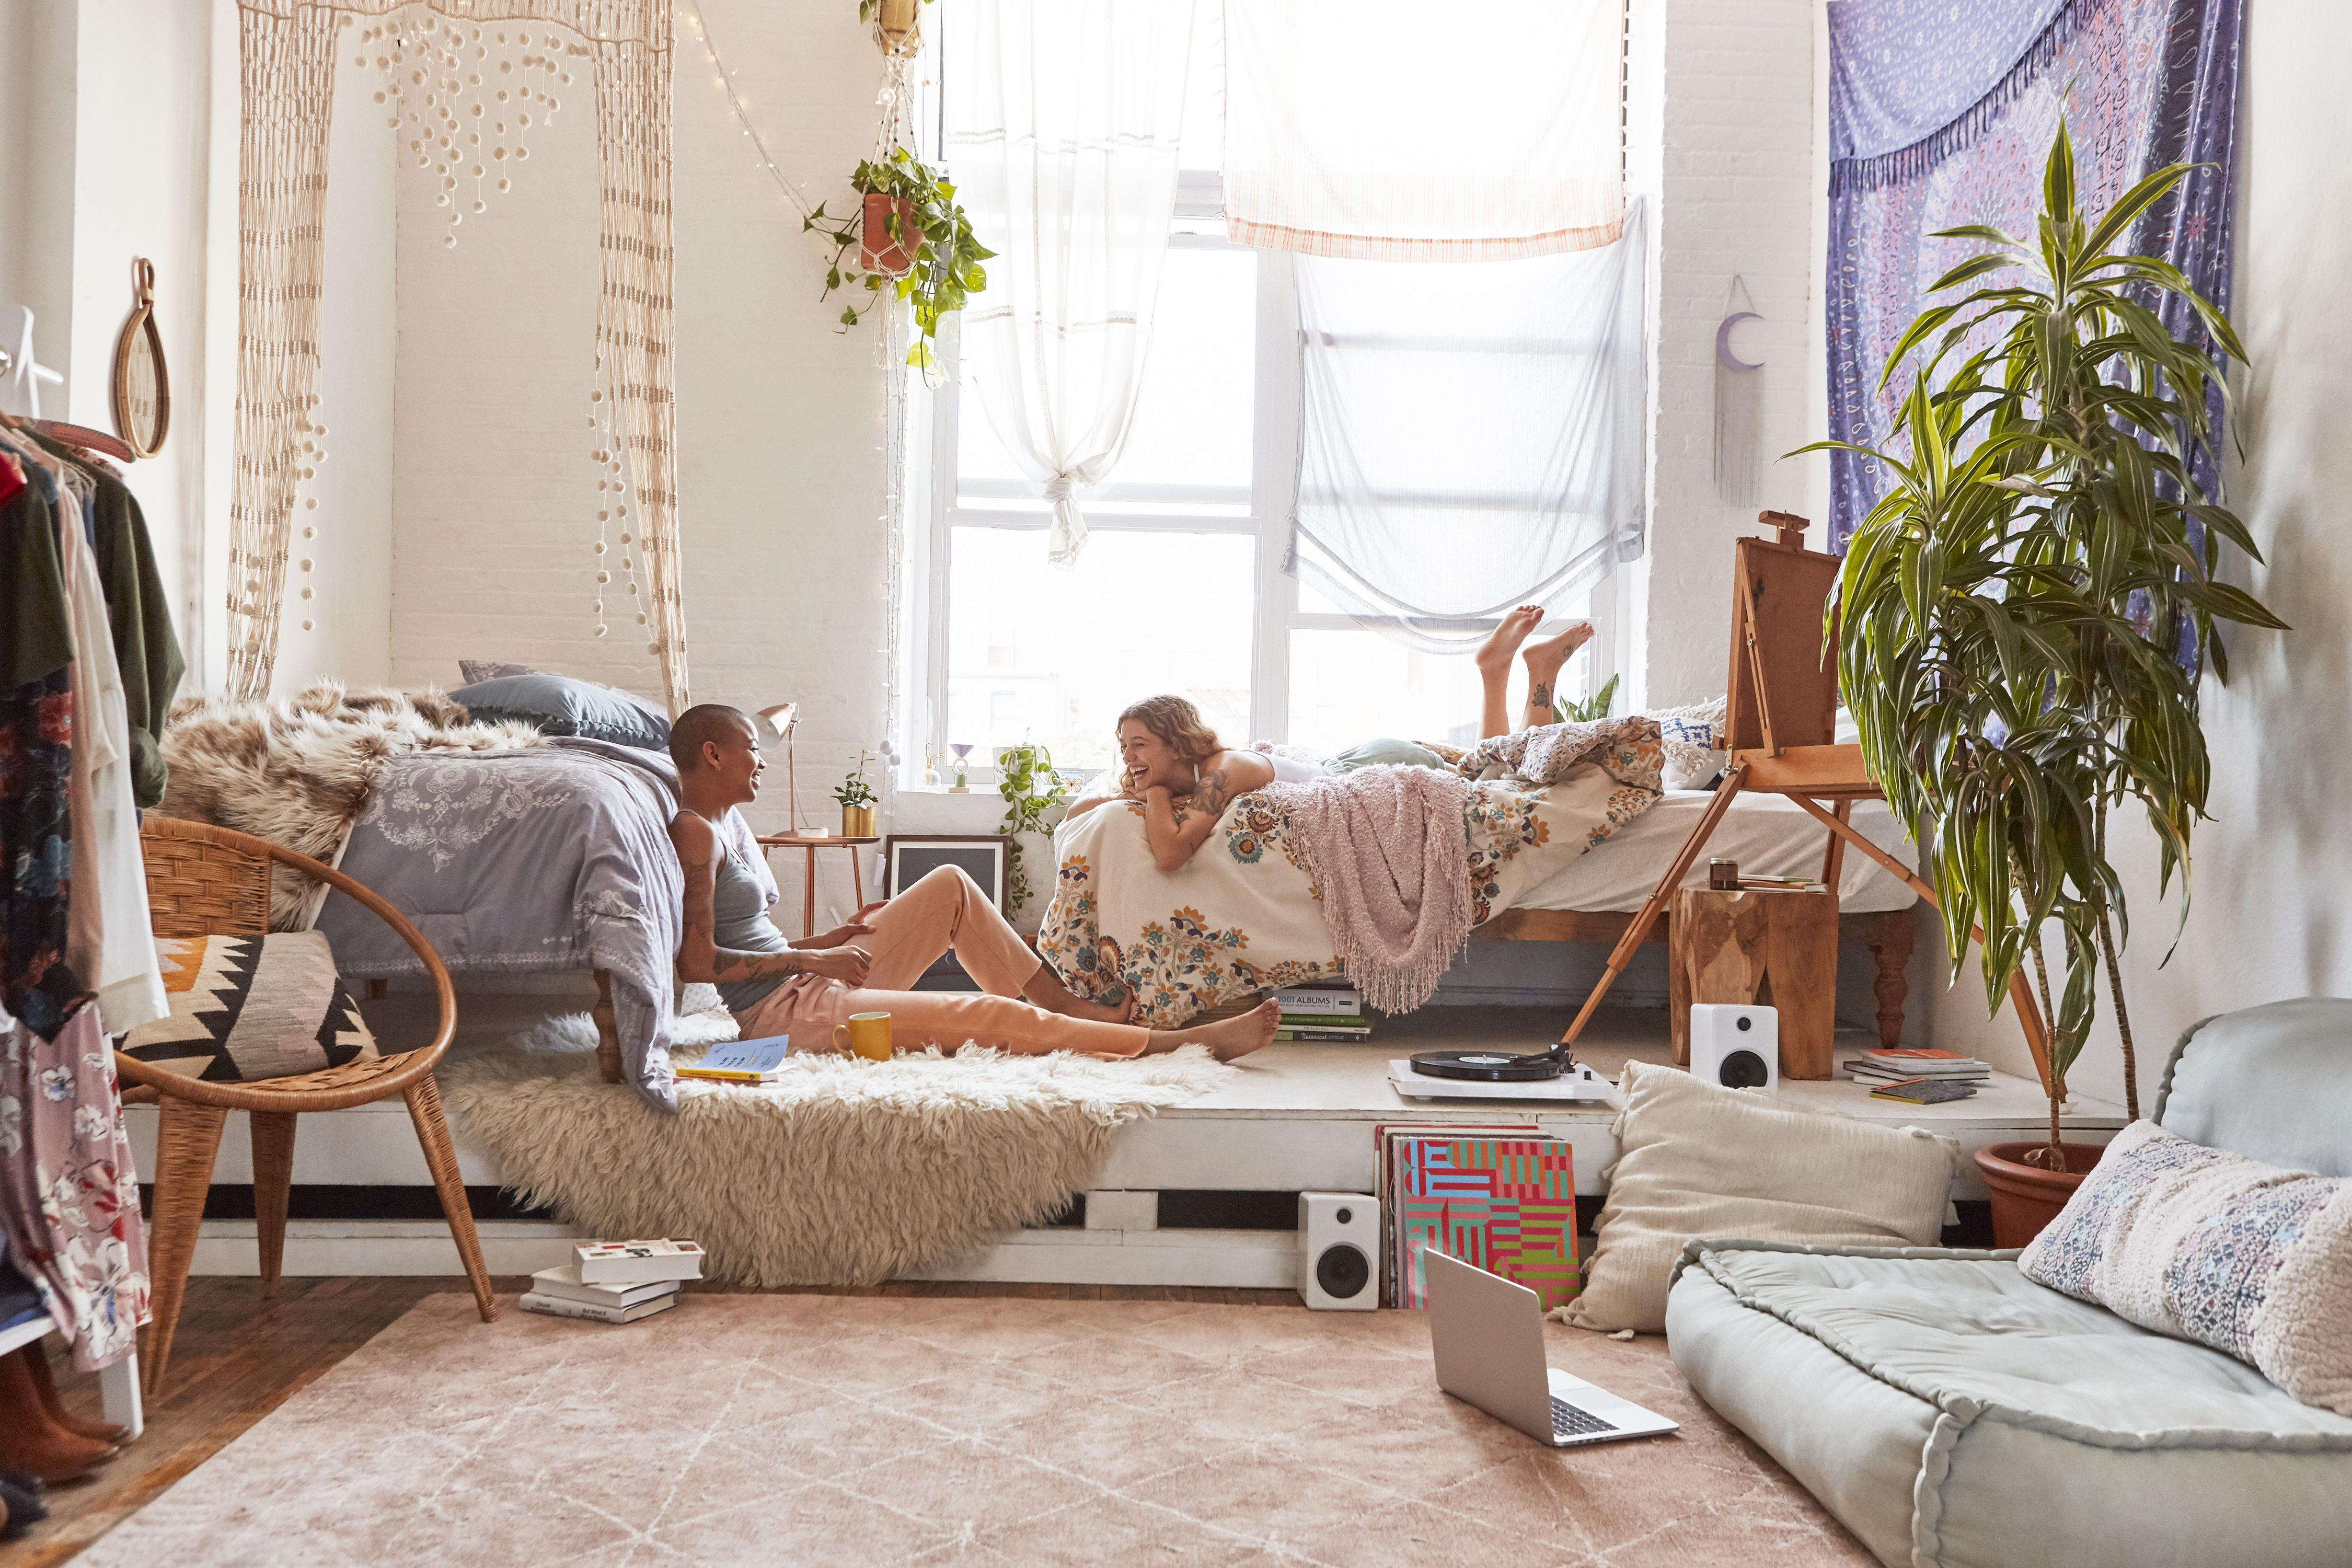 Pinterest Kittymachine Simple Bedroom Urban Outfitters